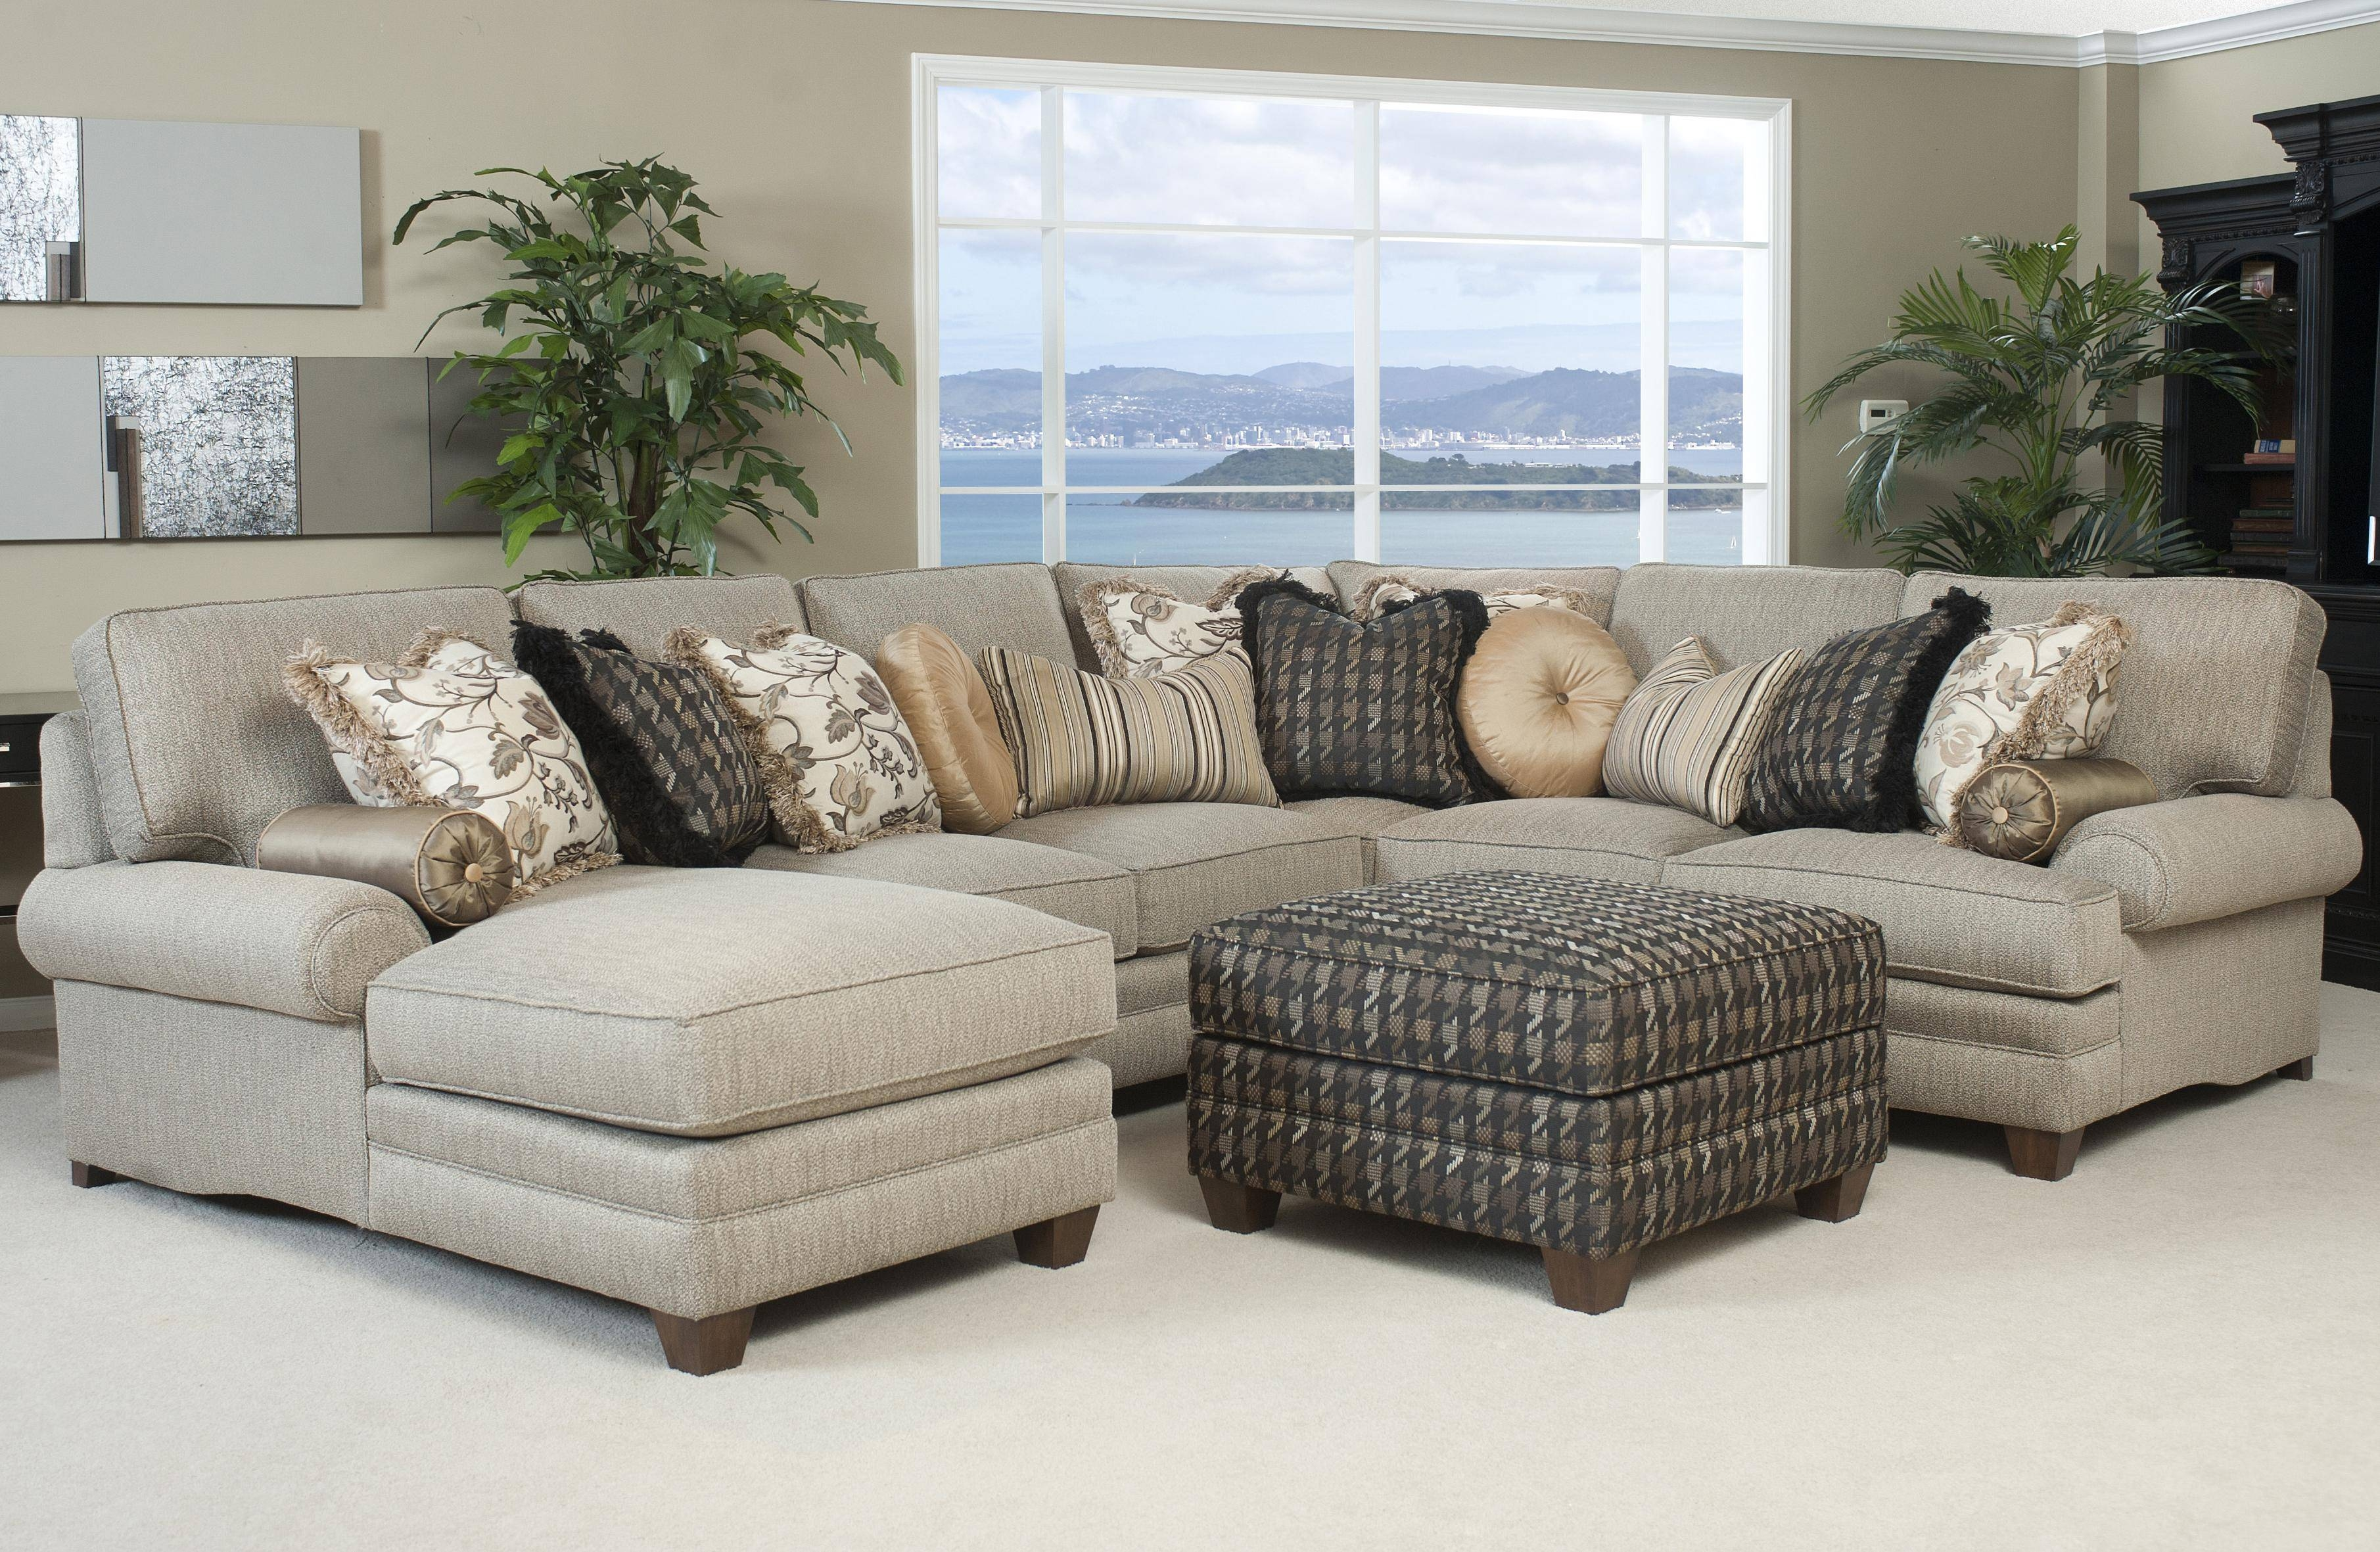 Most Comfortable Sectional Sofa With Chaise - Cleanupflorida pertaining to Short Sectional Sofas (Image 9 of 15)